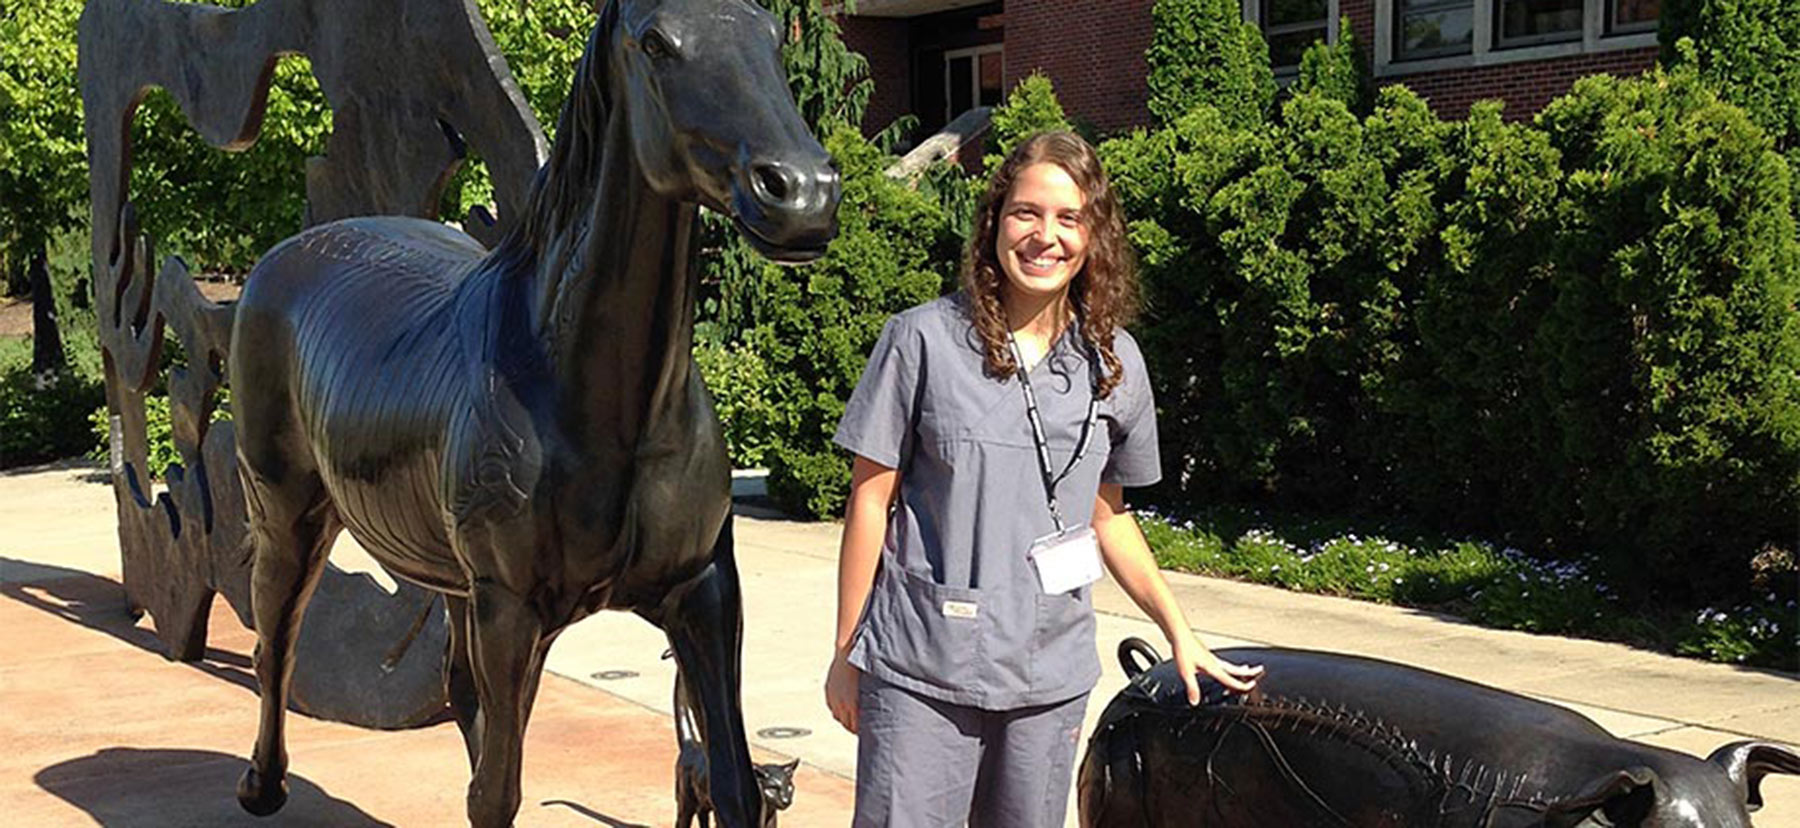 Natalia Amaral Marrero posing with statues of a horse and pig